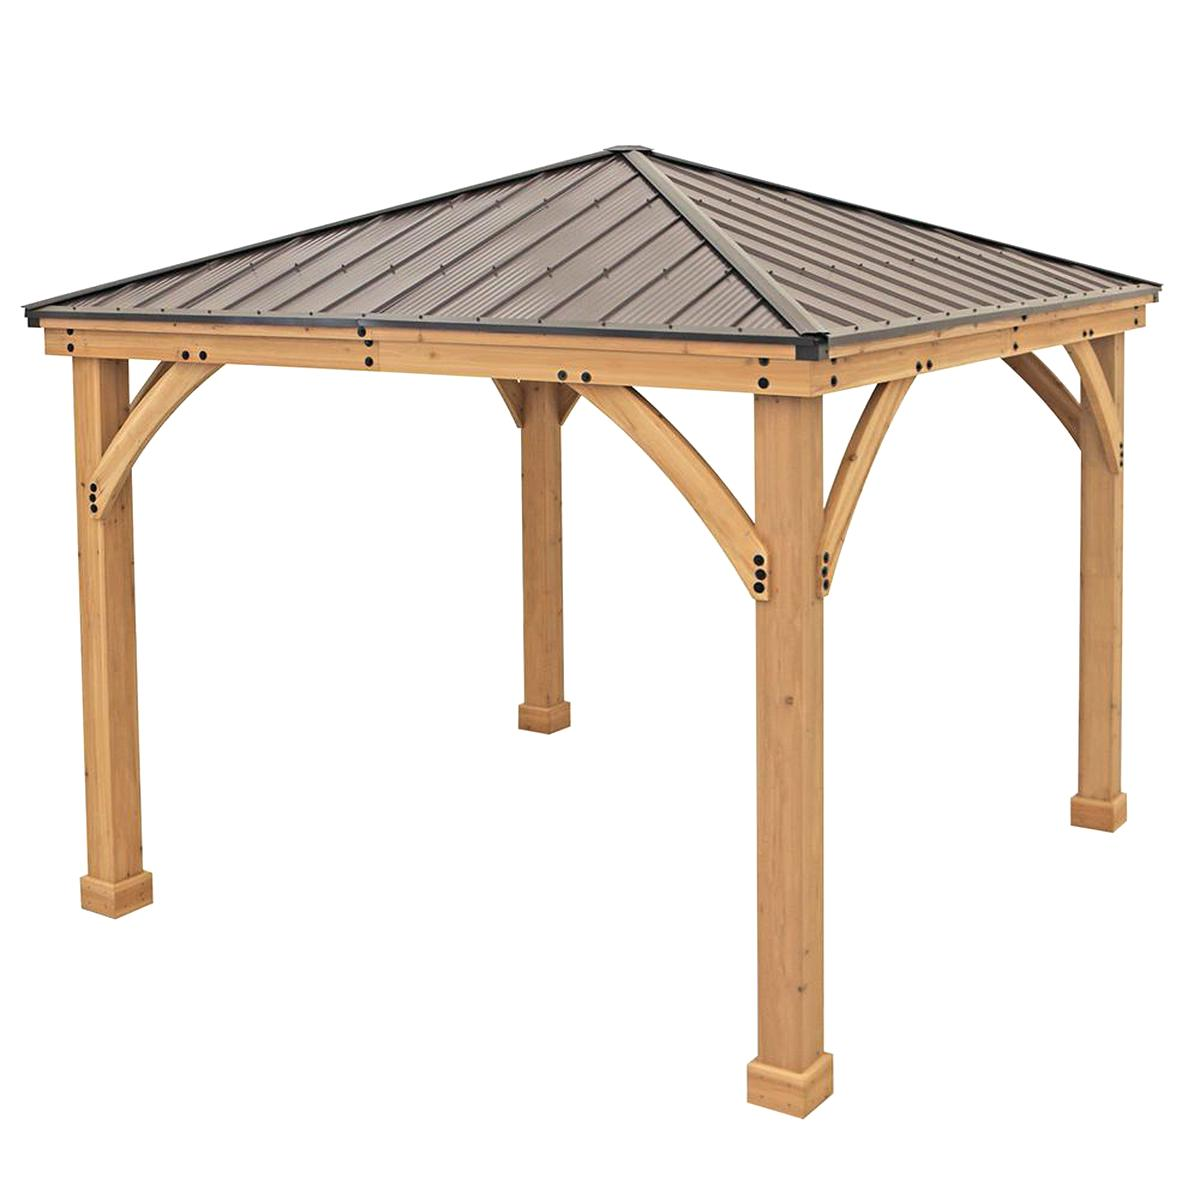 Wood Gazebo for sale   Only 4 left at -60%